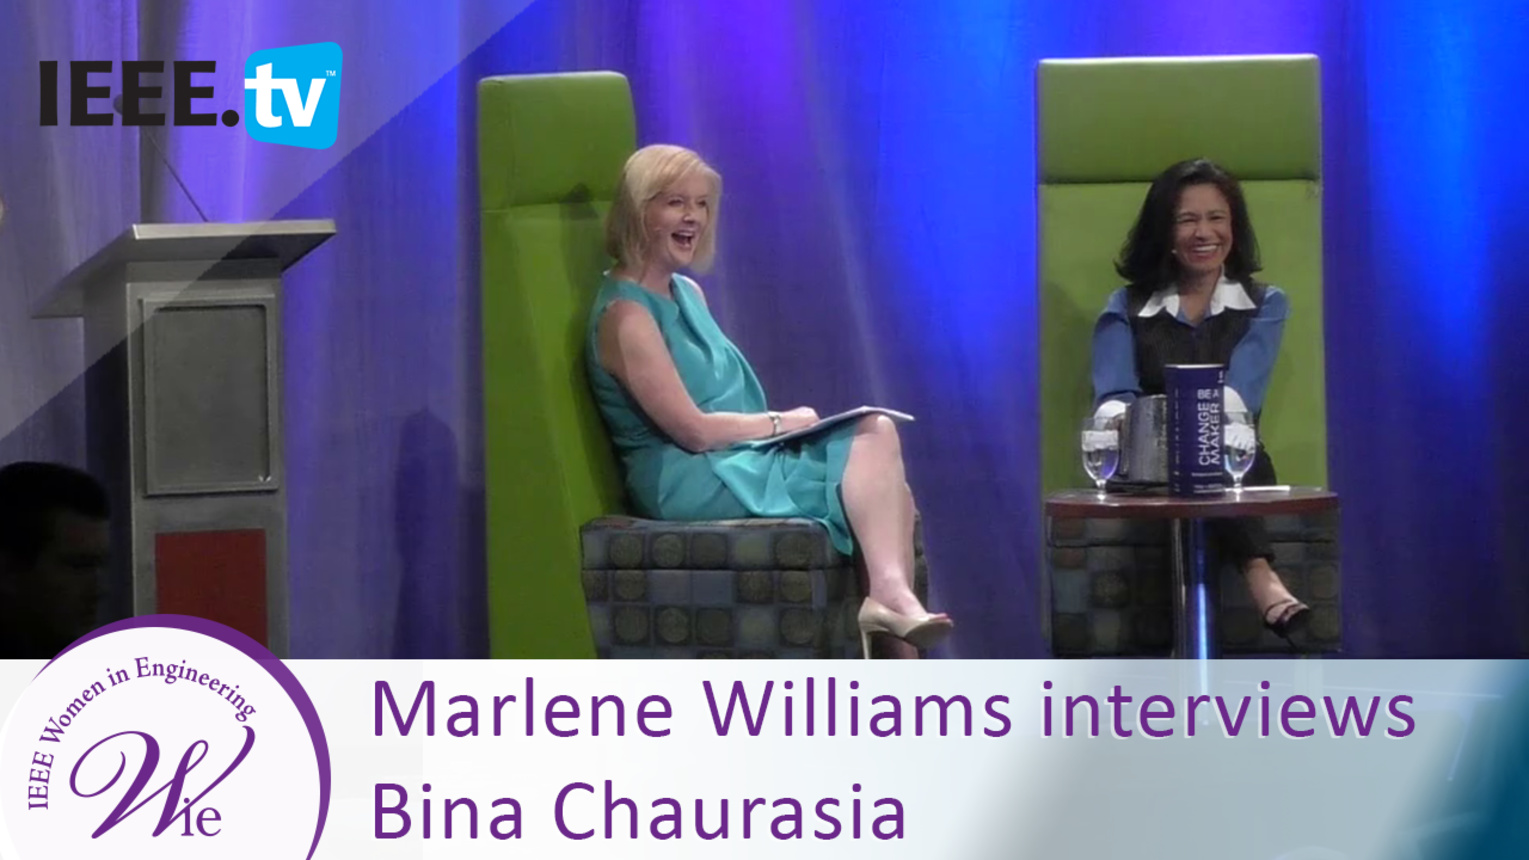 Watermark CEO Marlene Williamson Interviews Ericsson's Bina Chaurasia - 2016 Women in Engineering Conference